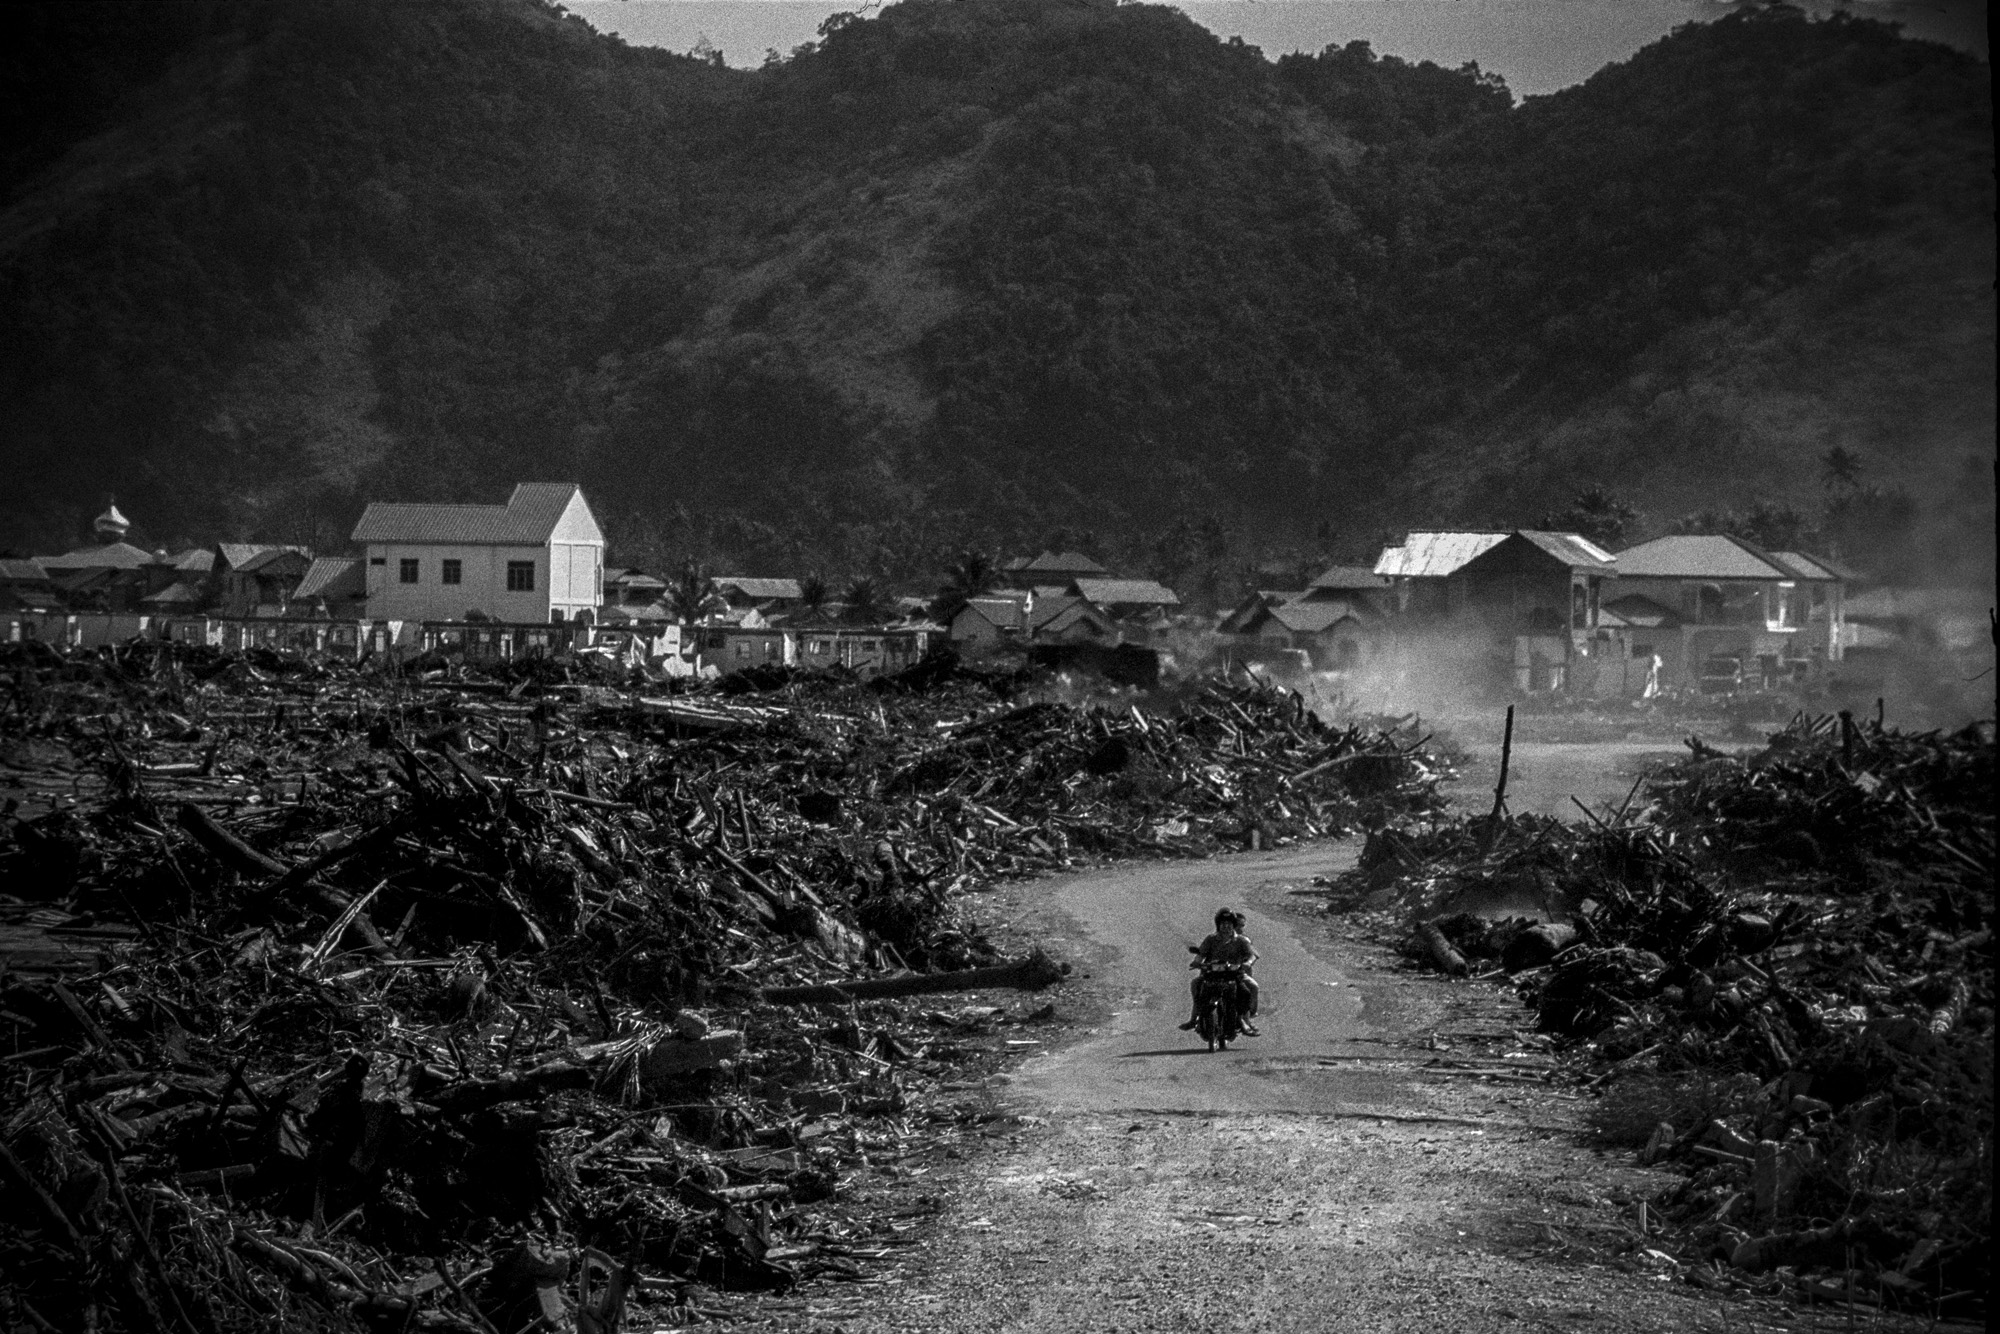 INDONESIA. Sumatra island. Banda Aceh. After the tsunami. 2005. ©MarkPearson